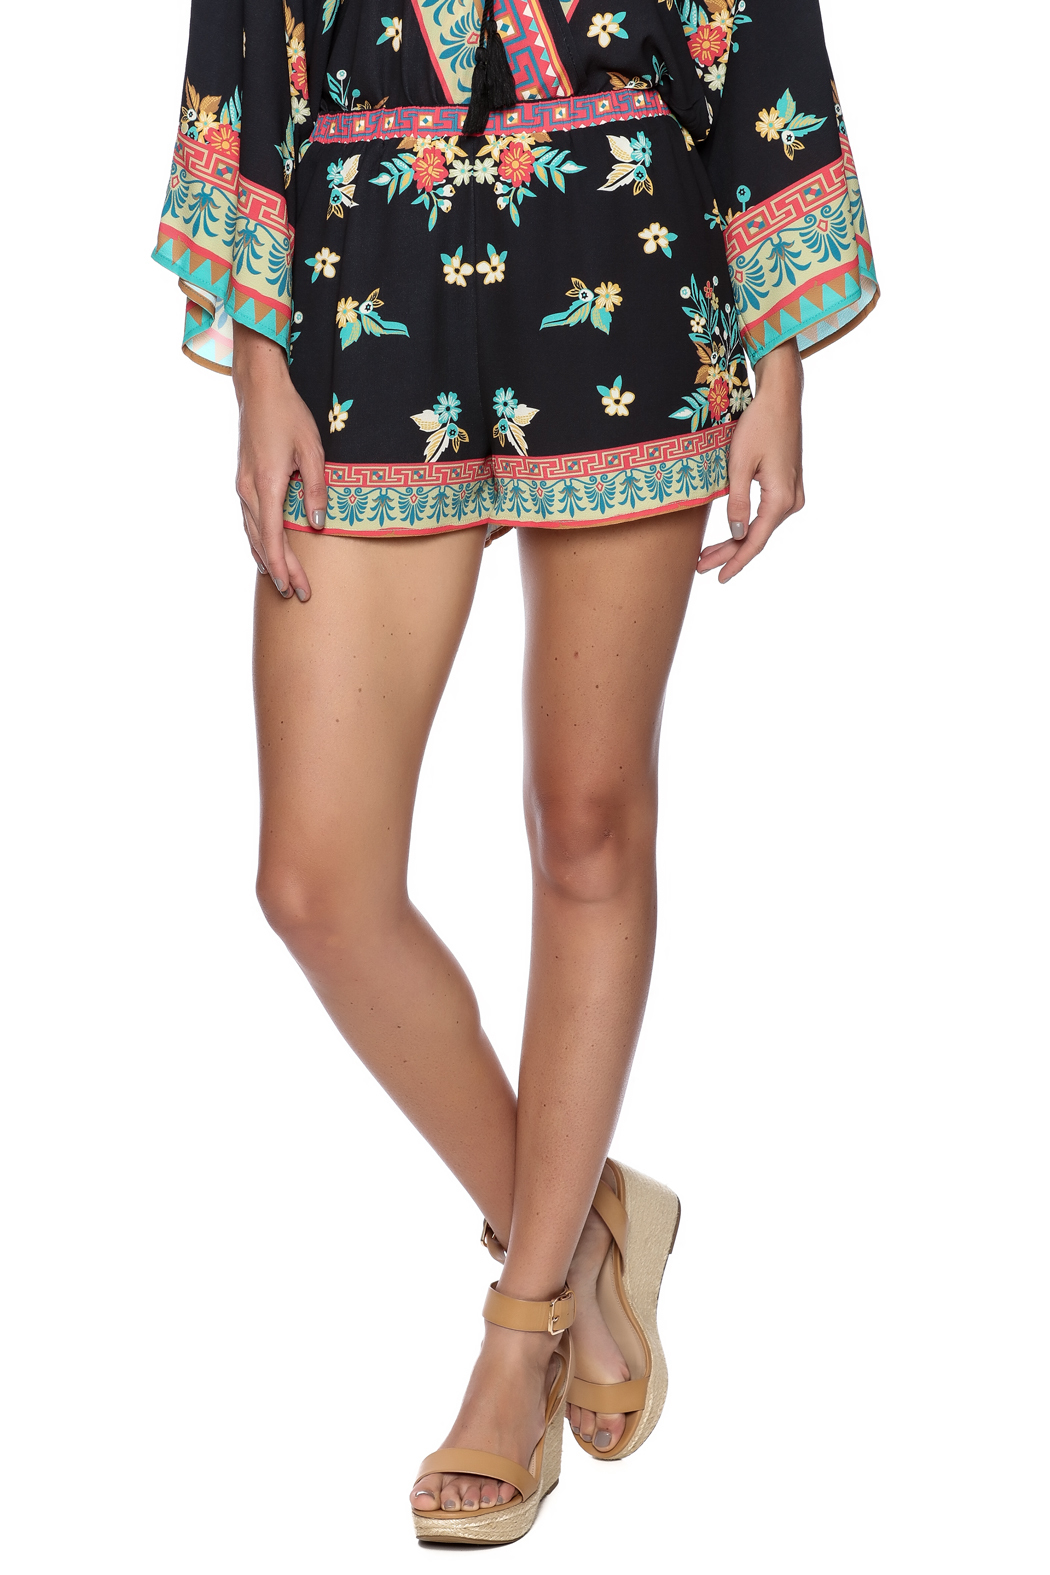 Bacio Black Floral Shorts - Front Cropped Image